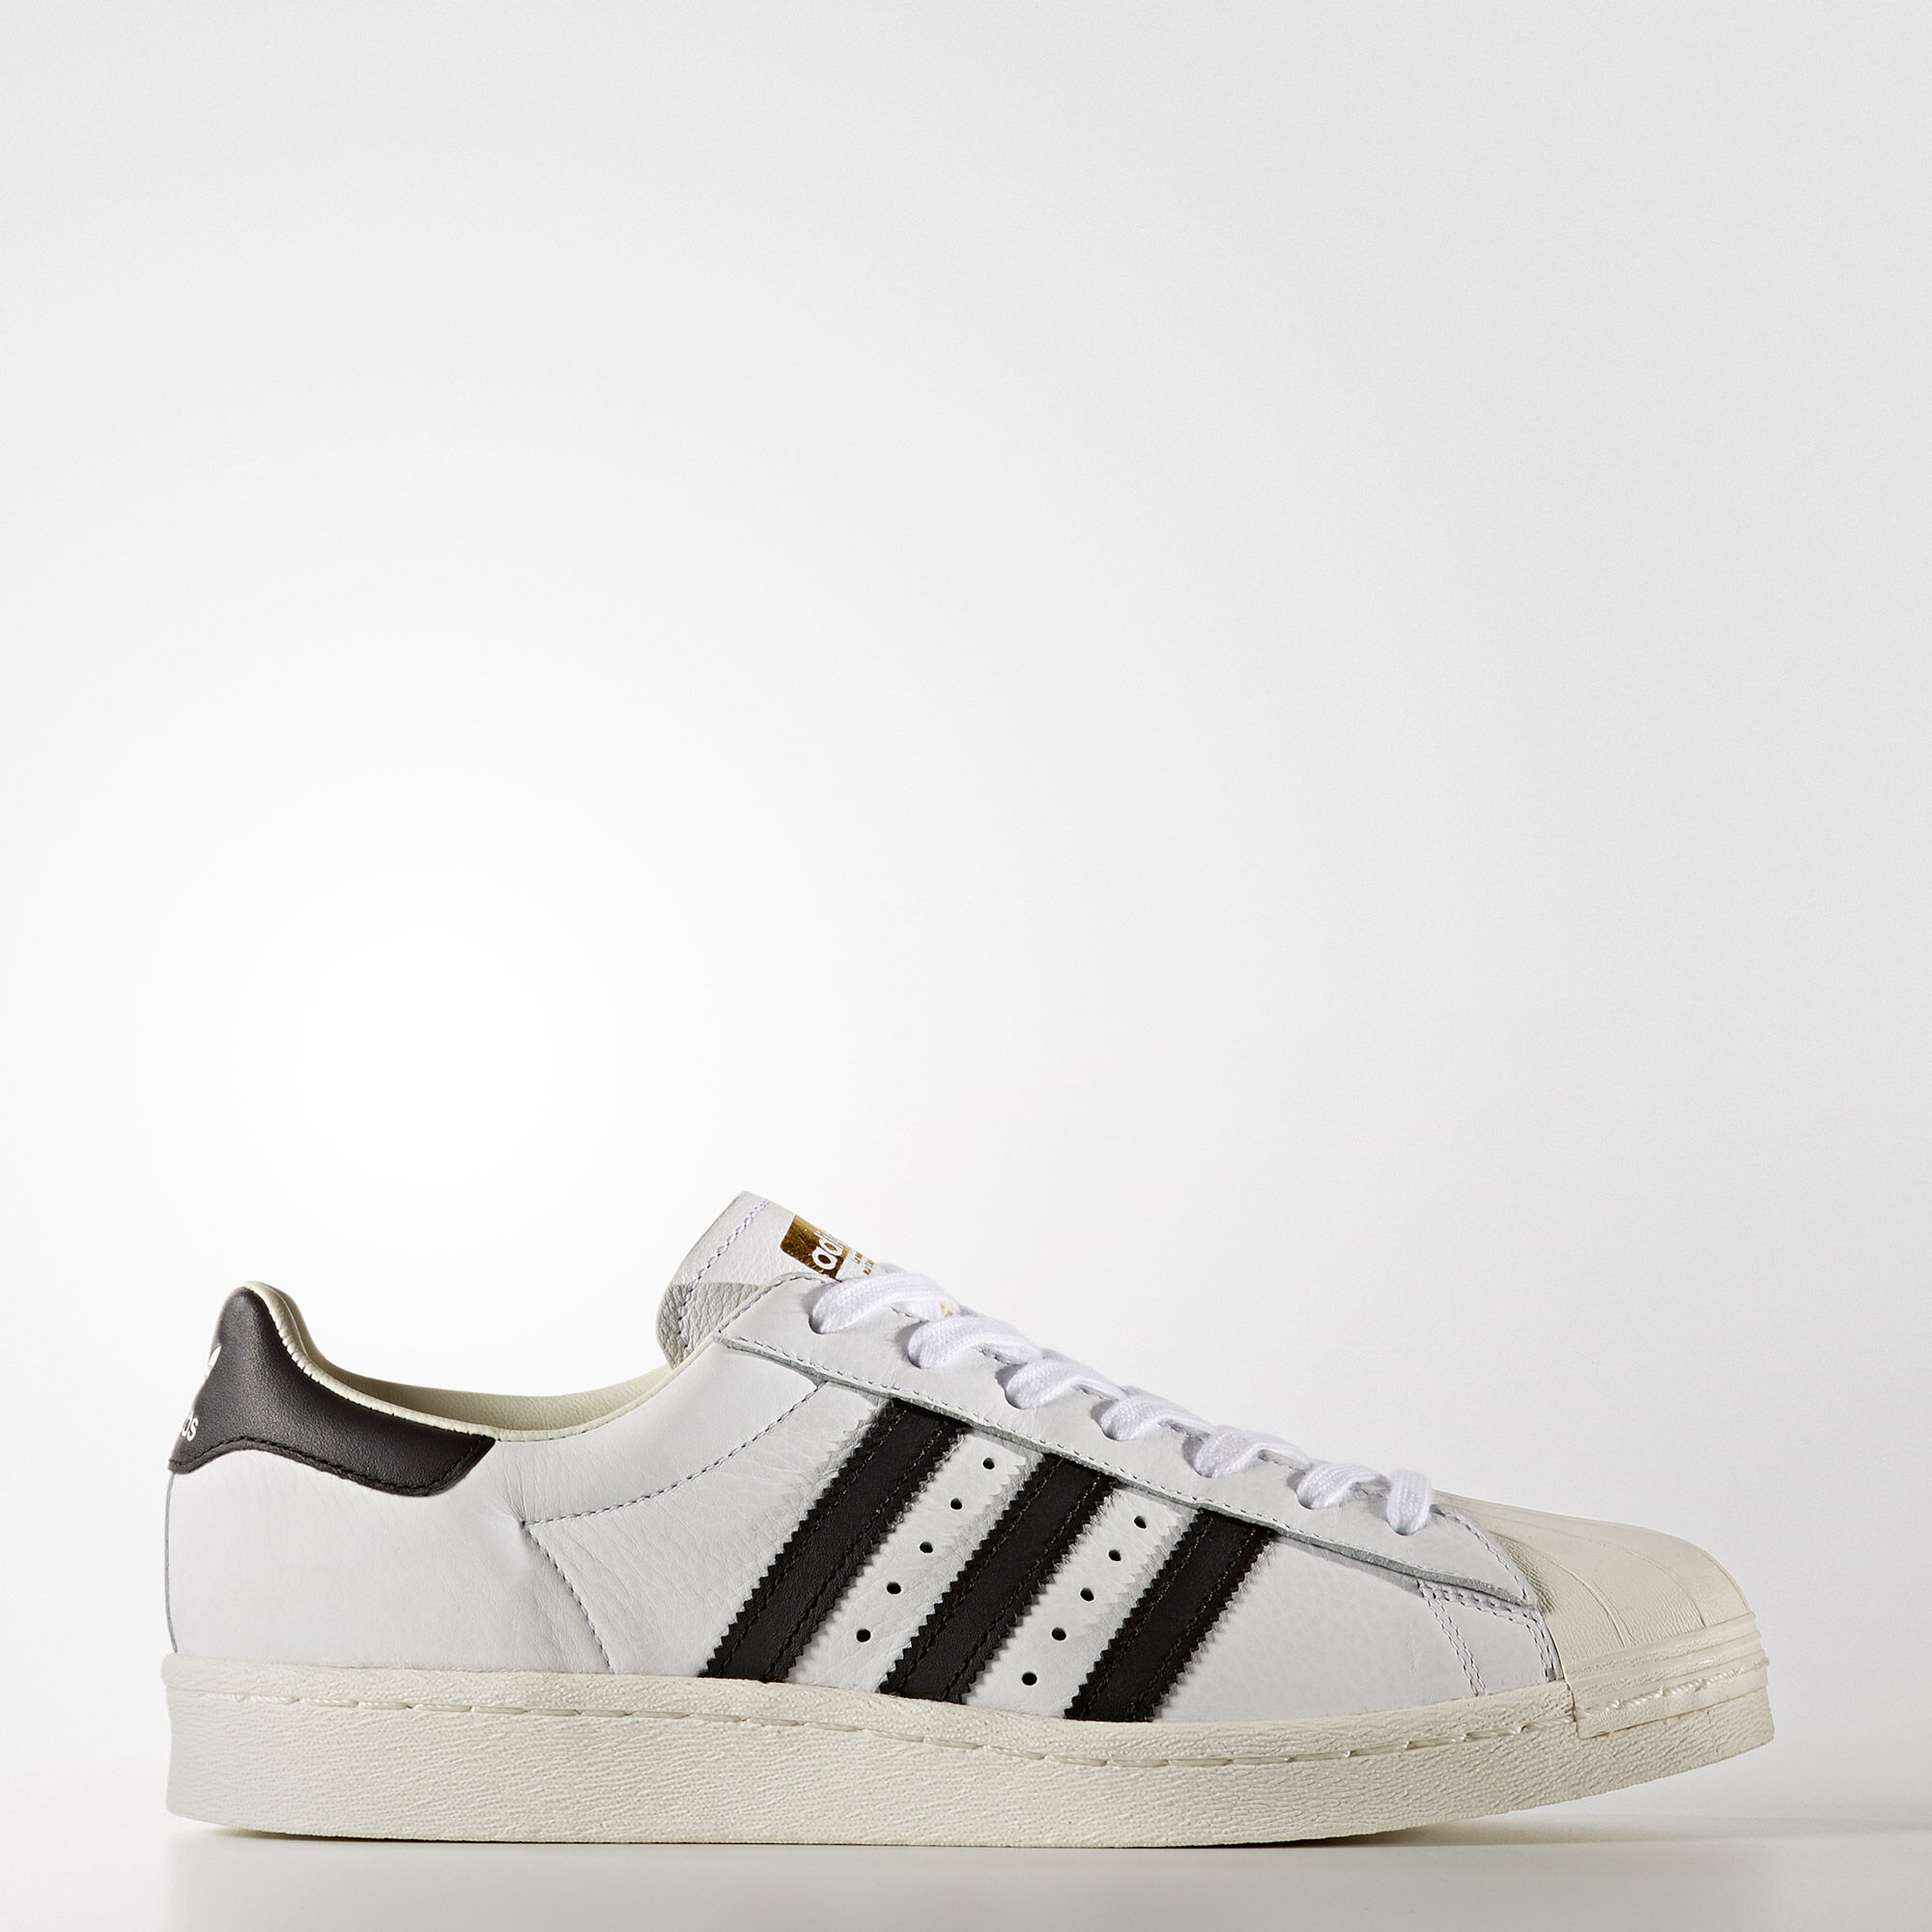 Cheap Adidas Superstar 80S DLX Suede Shoes